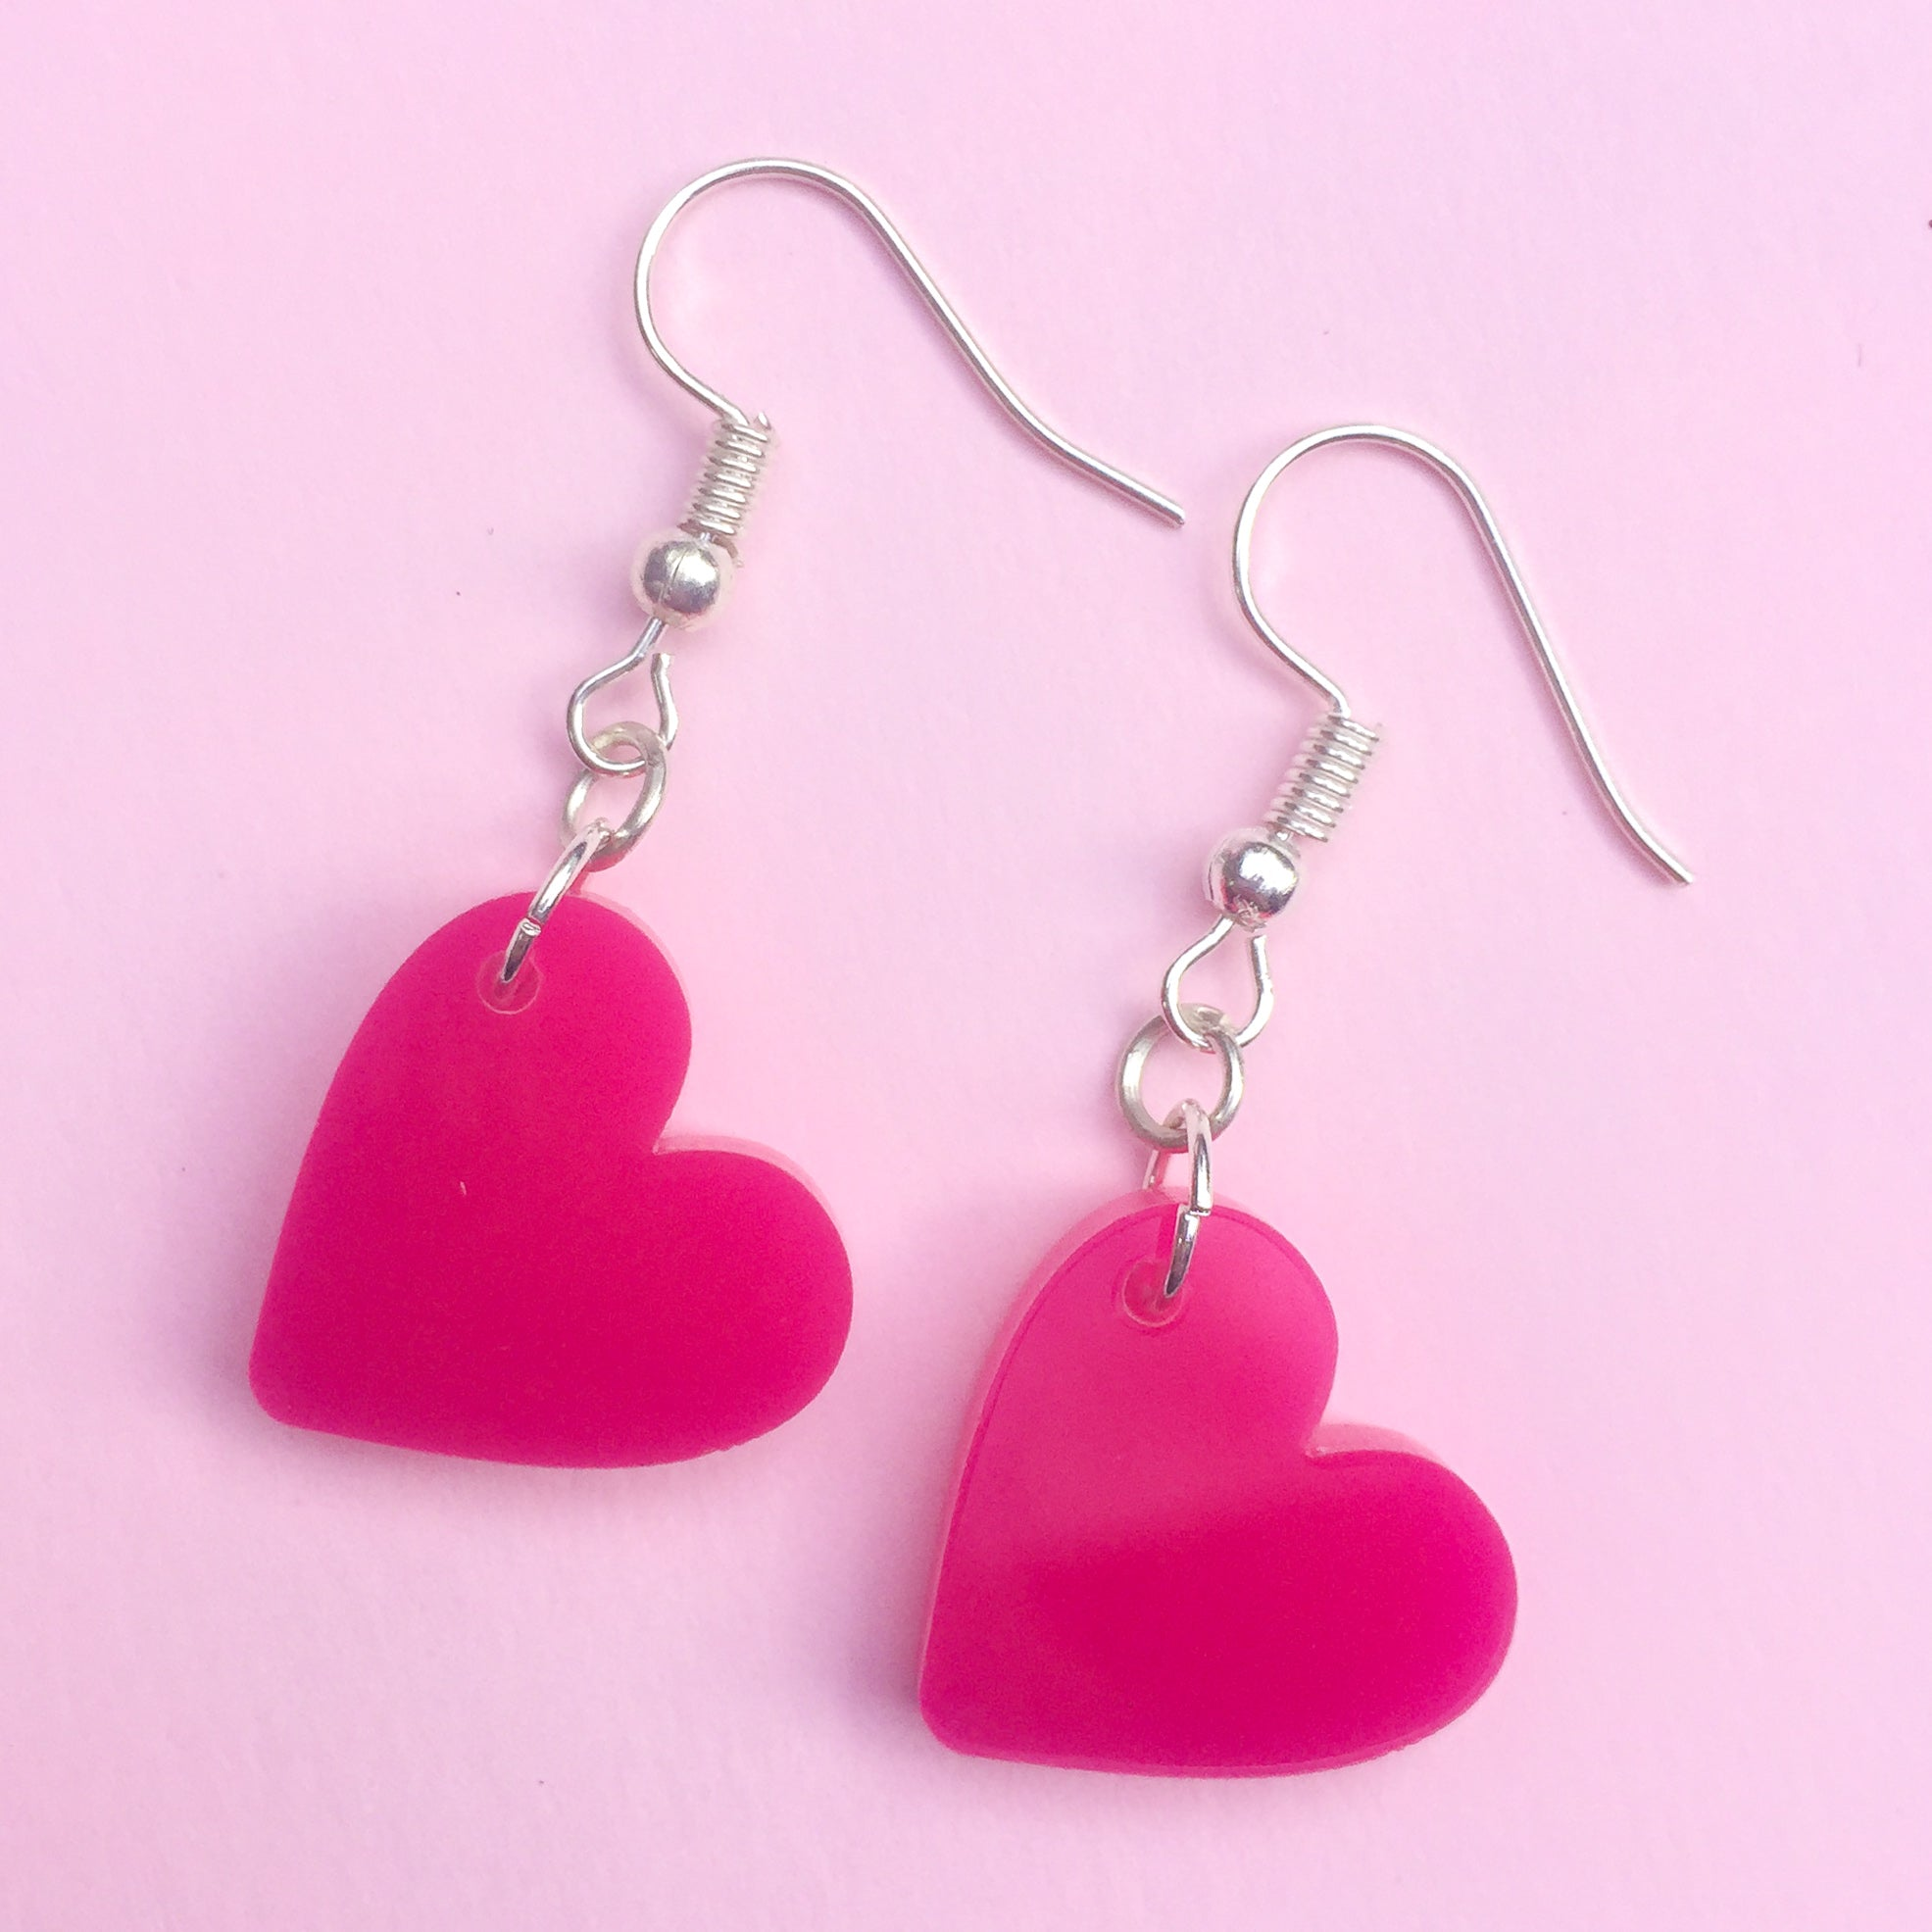 Heart Hook Earrings - Hot Pink